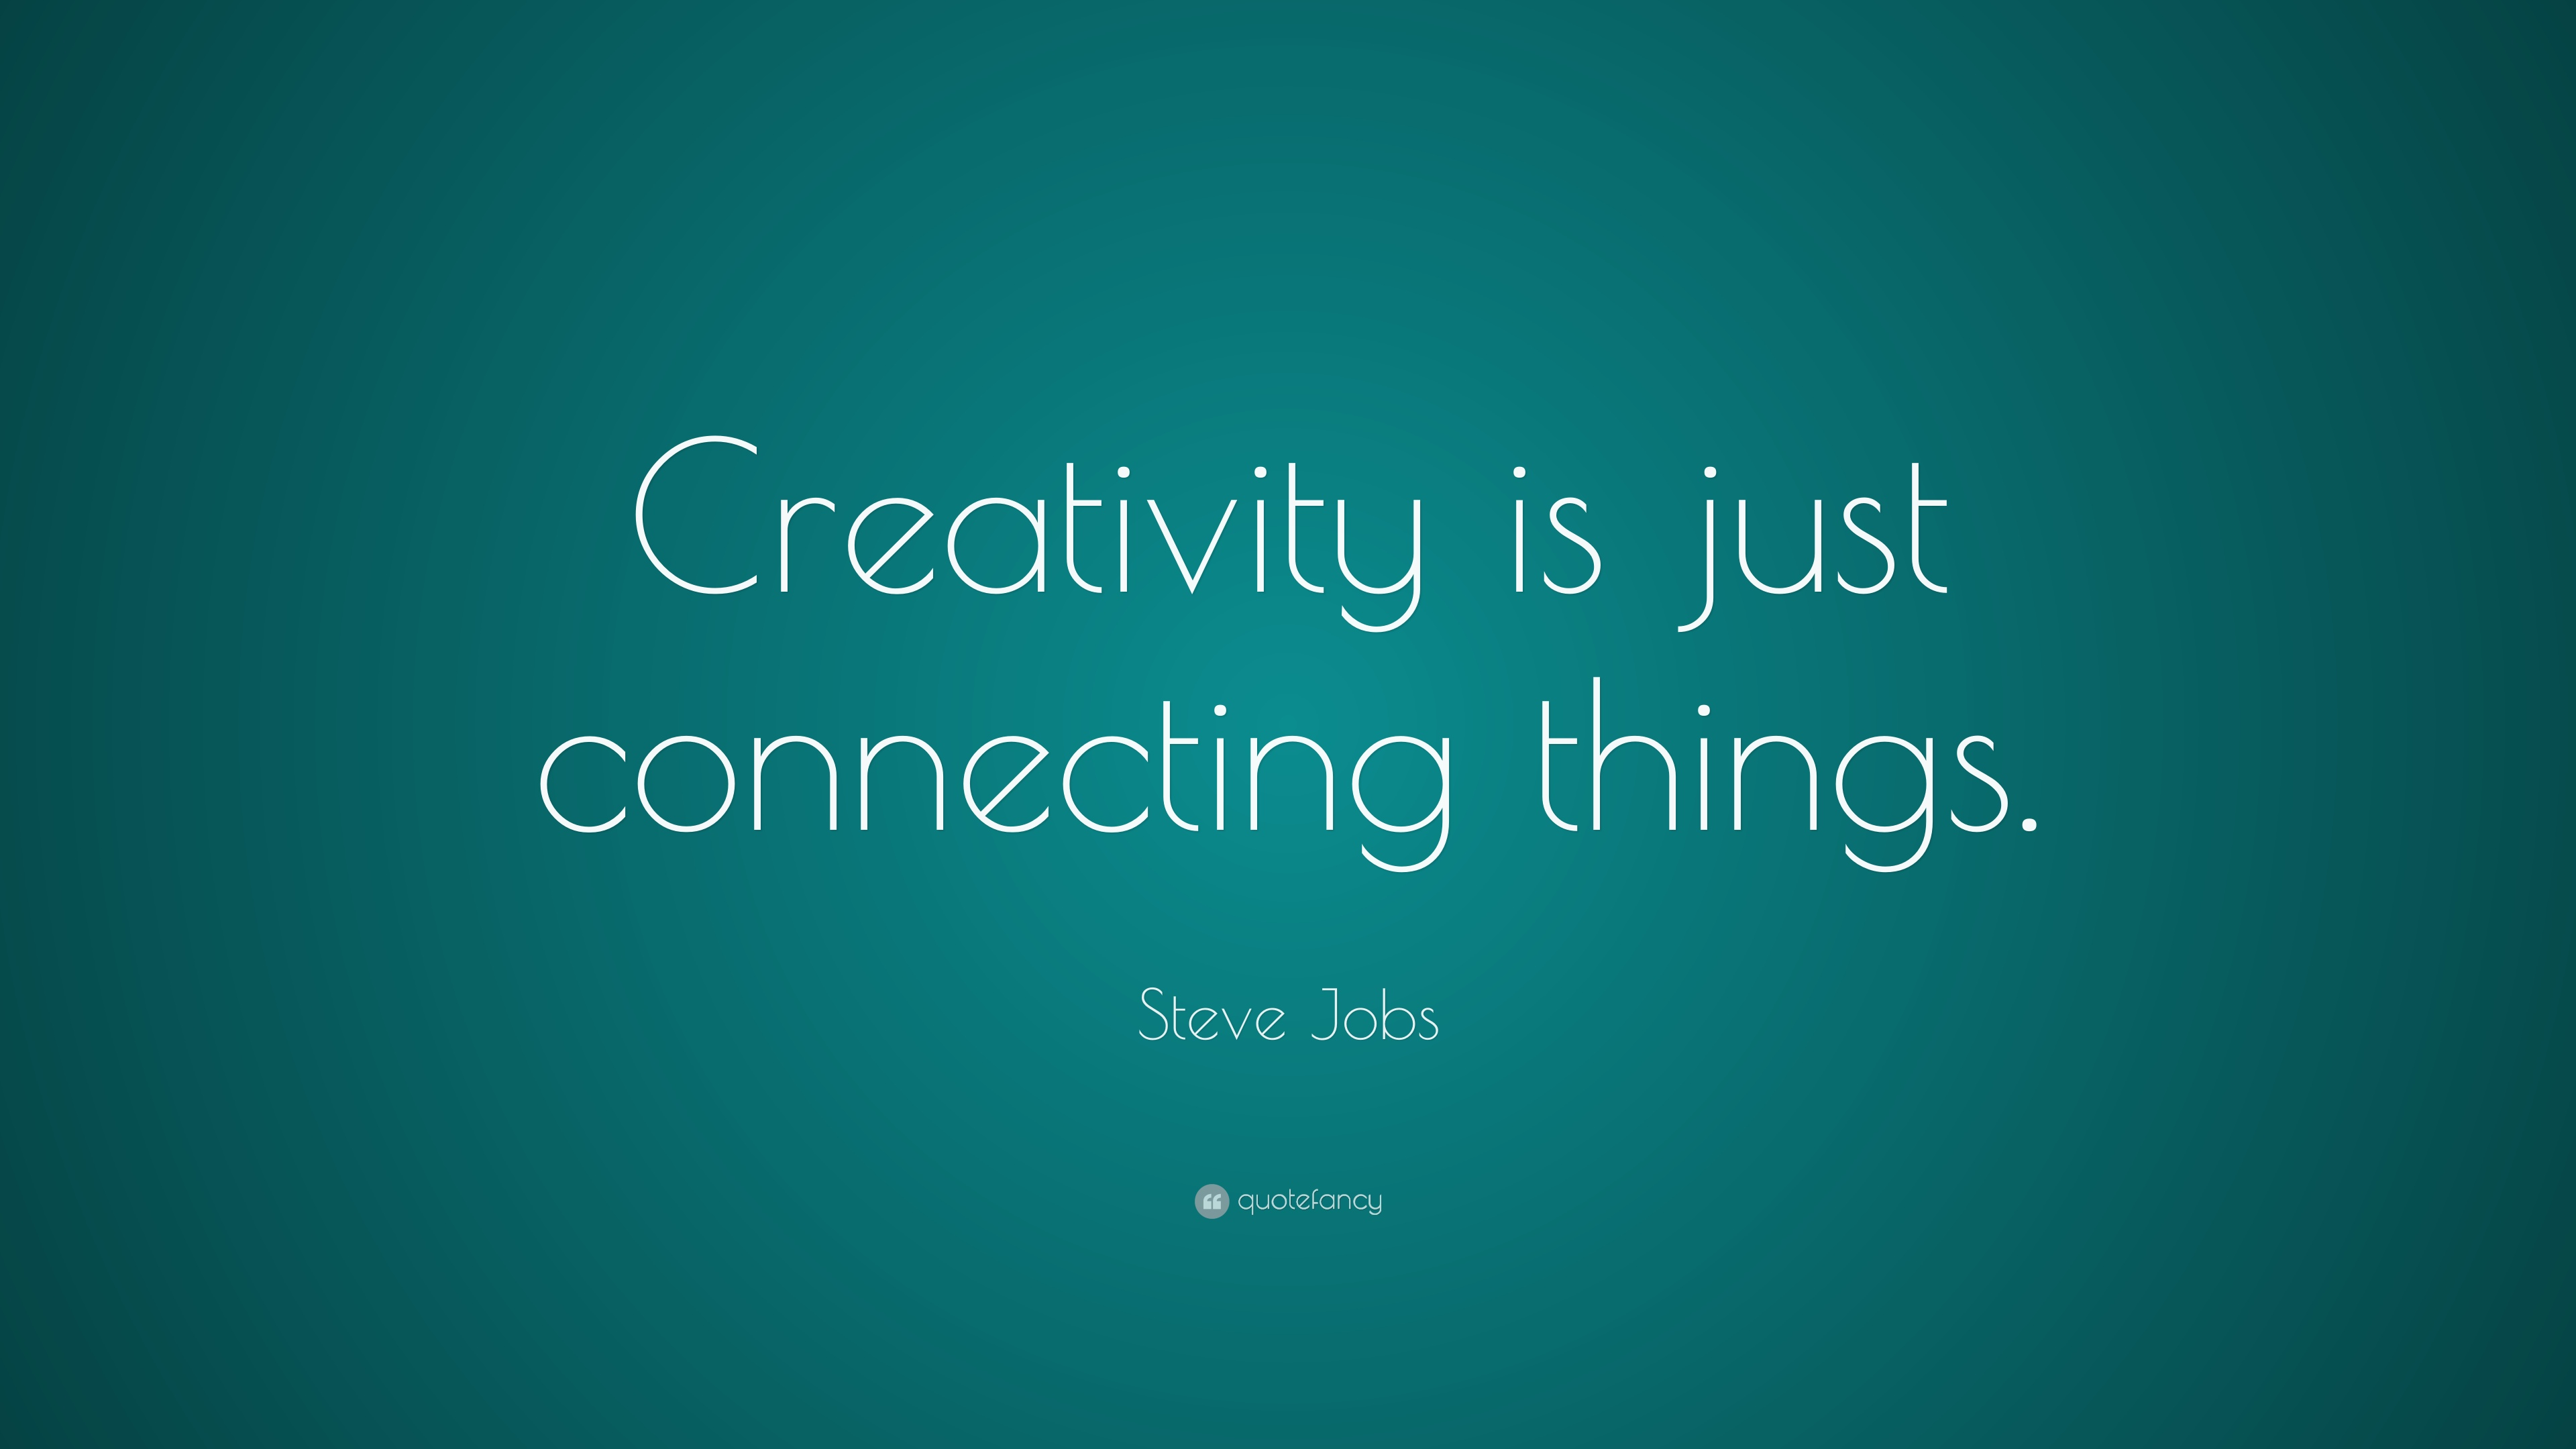 Steve Jobs Creativity Is Just Connecting Things